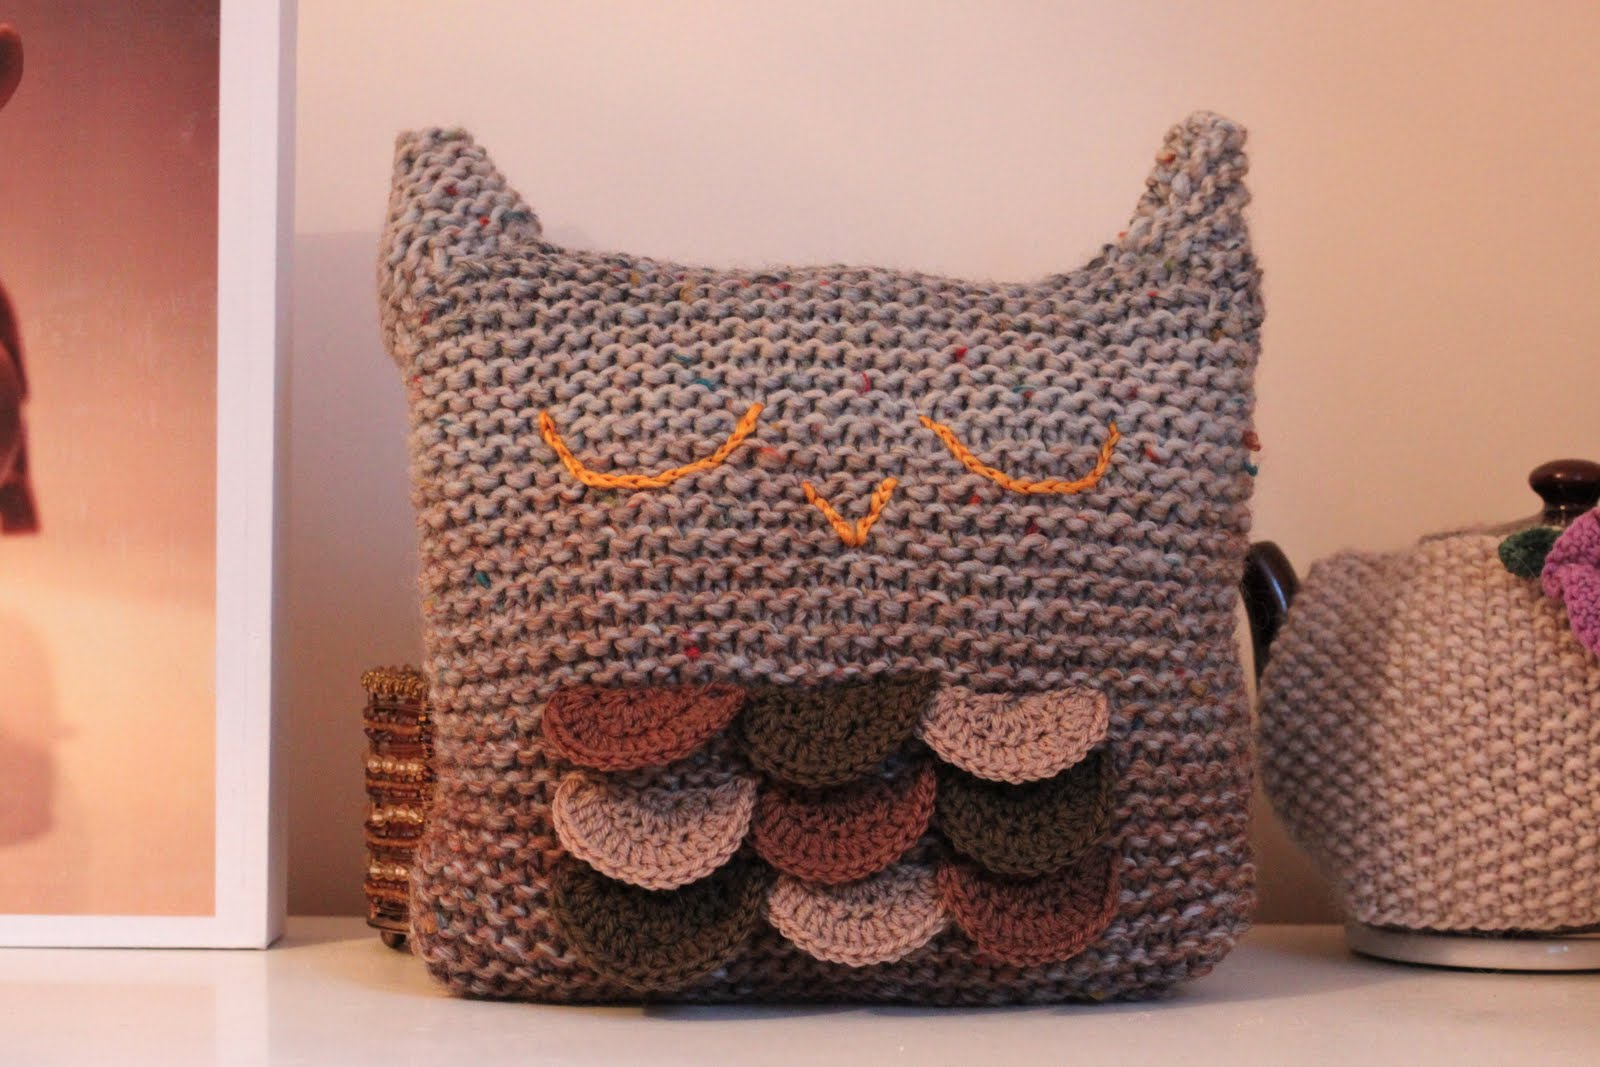 Owl Cushion Knitting Pattern : KnittingPony: Sleepy Owl Cushion (Free Knitting Pattern)